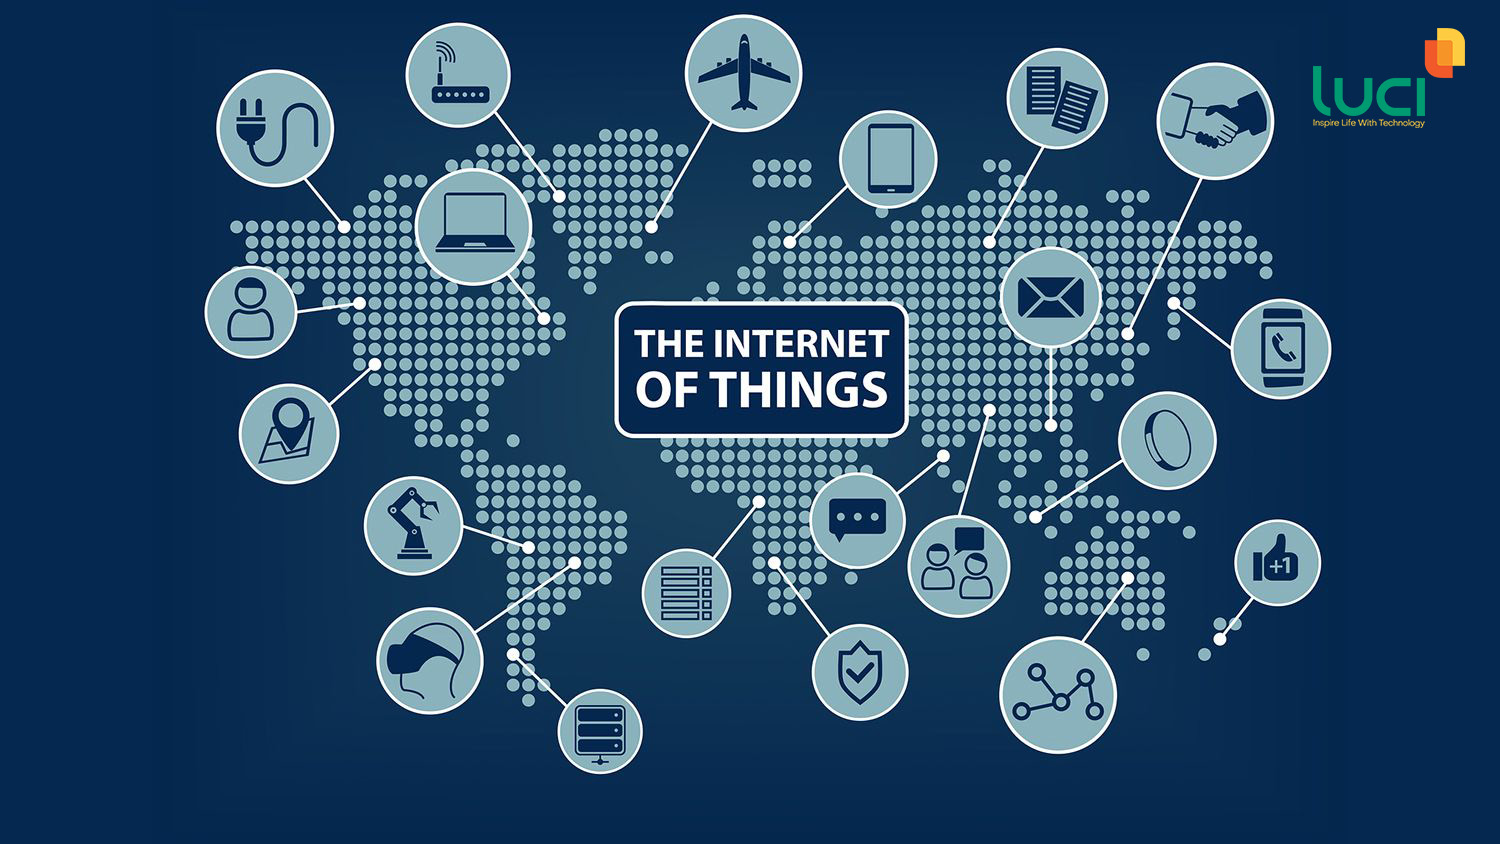 Ứng dụng IoT - Internet of things